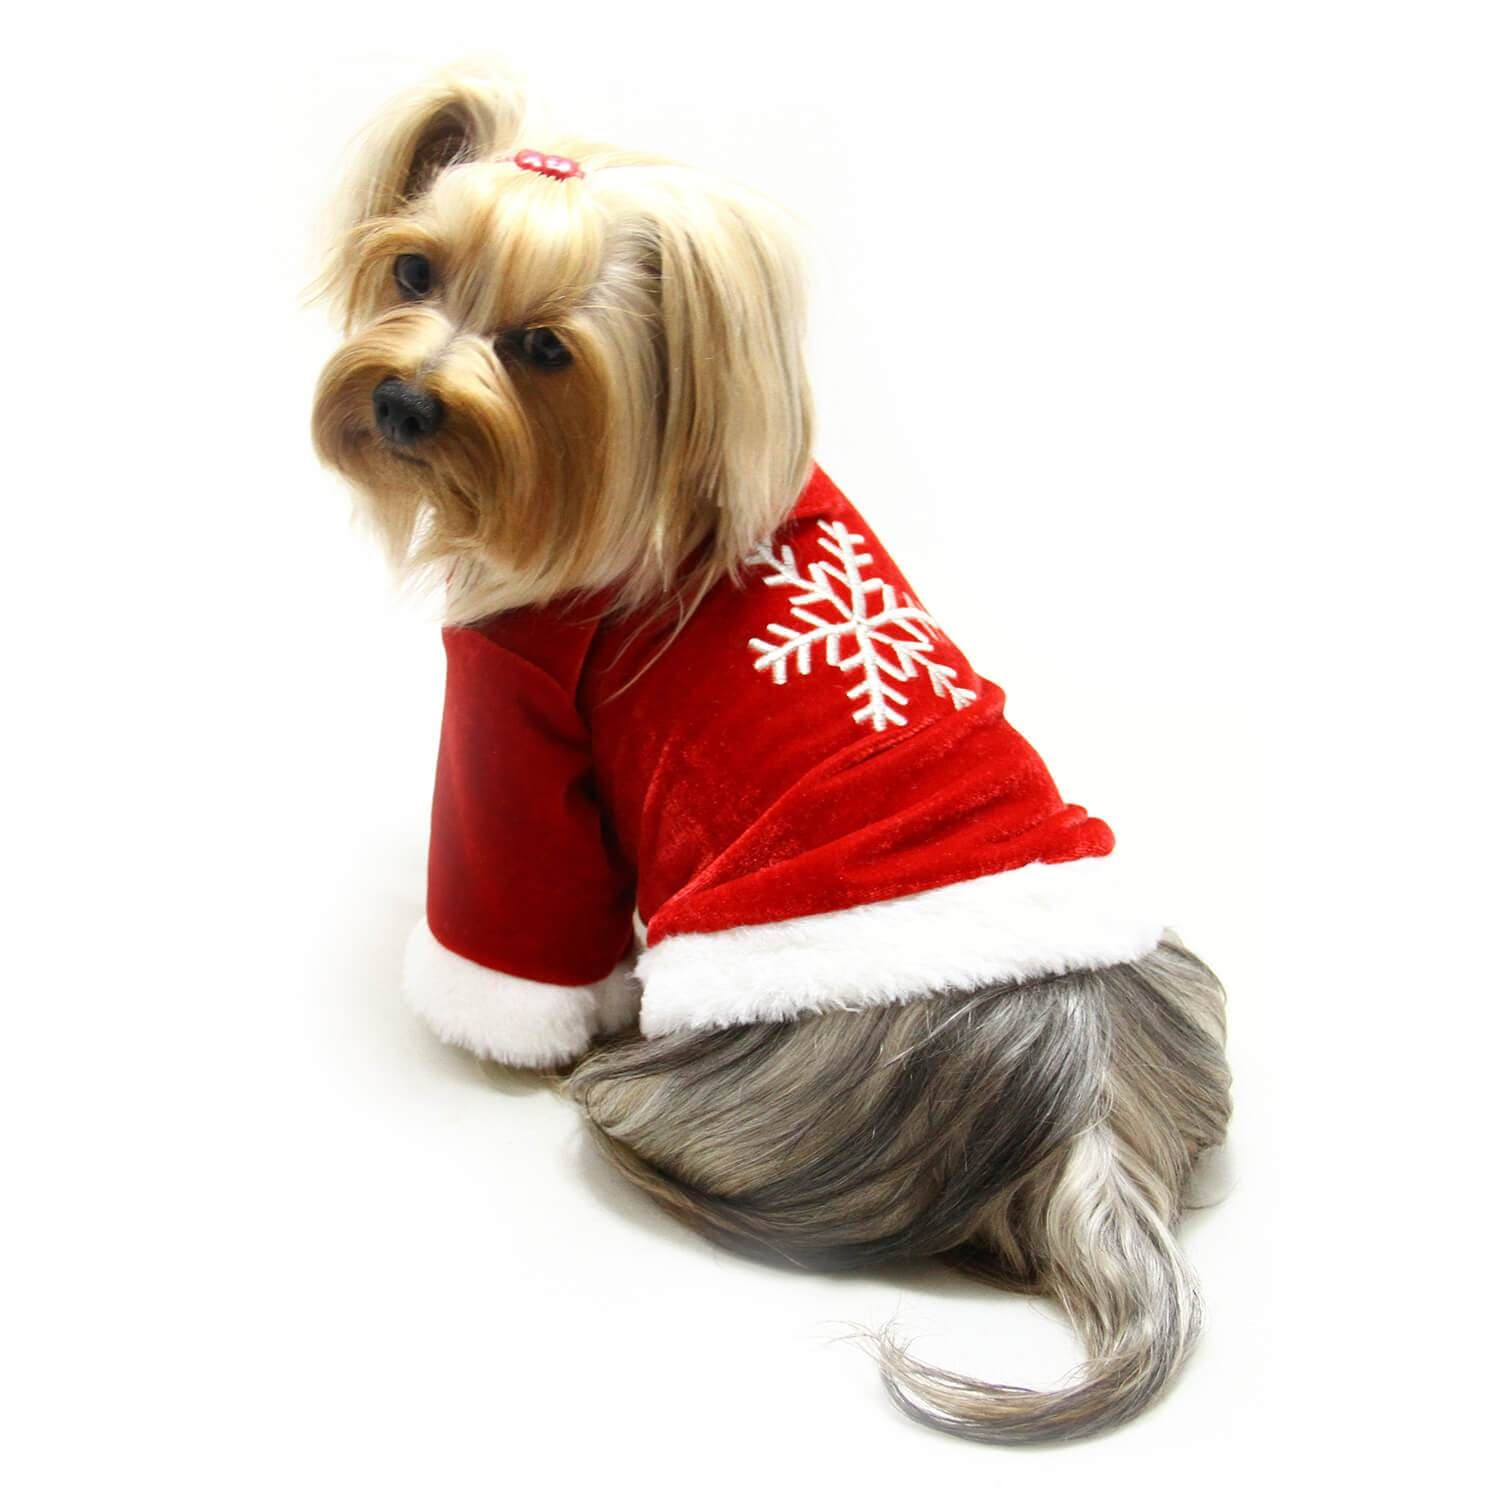 32a7841e22d3 Boy Dog Clothes Sized for Small Breed Dogs | DinkyDogClub